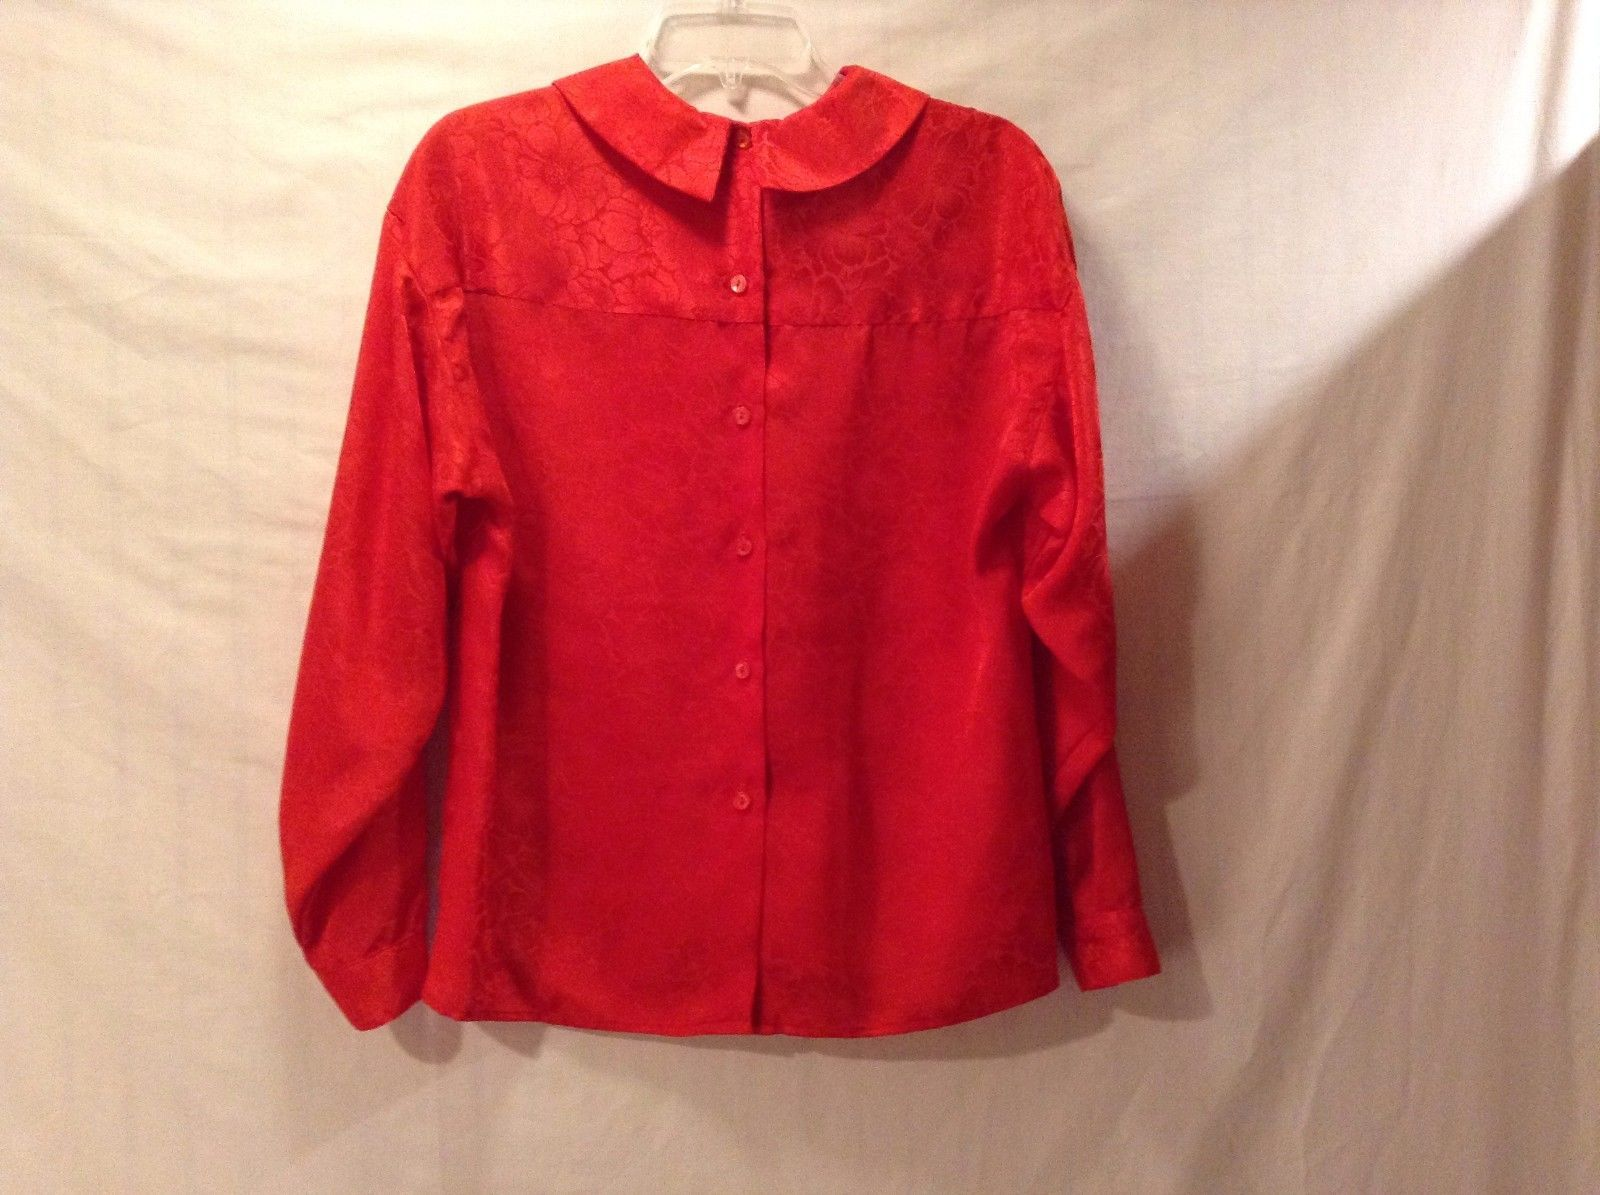 Used Great Condition Bonnie & Norma Size 8 Red Floral Pattern Button Up Shirt